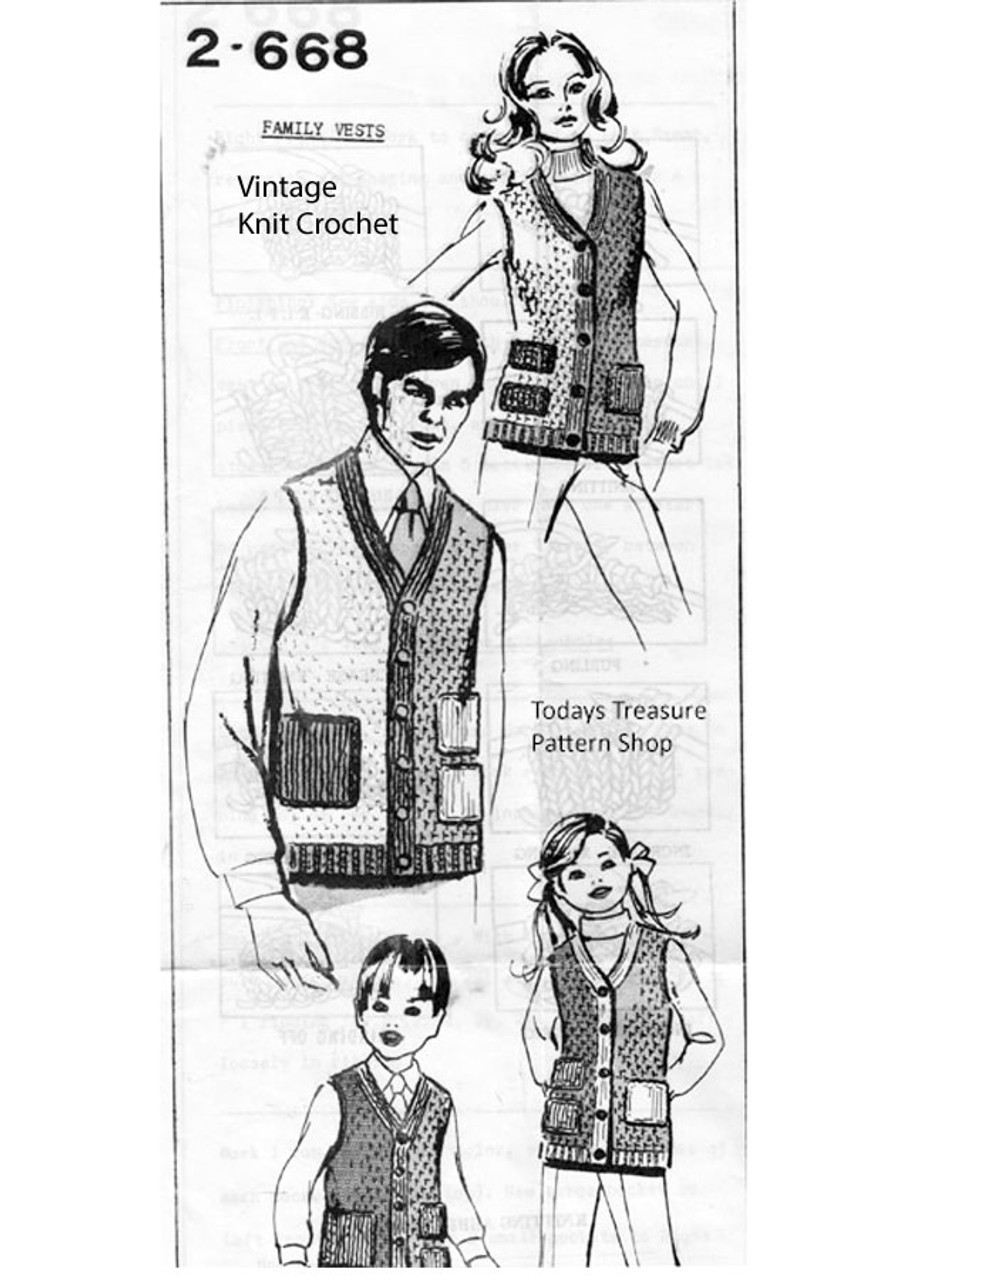 Crochet His Hers Vests Patterns, Mail Order 2668